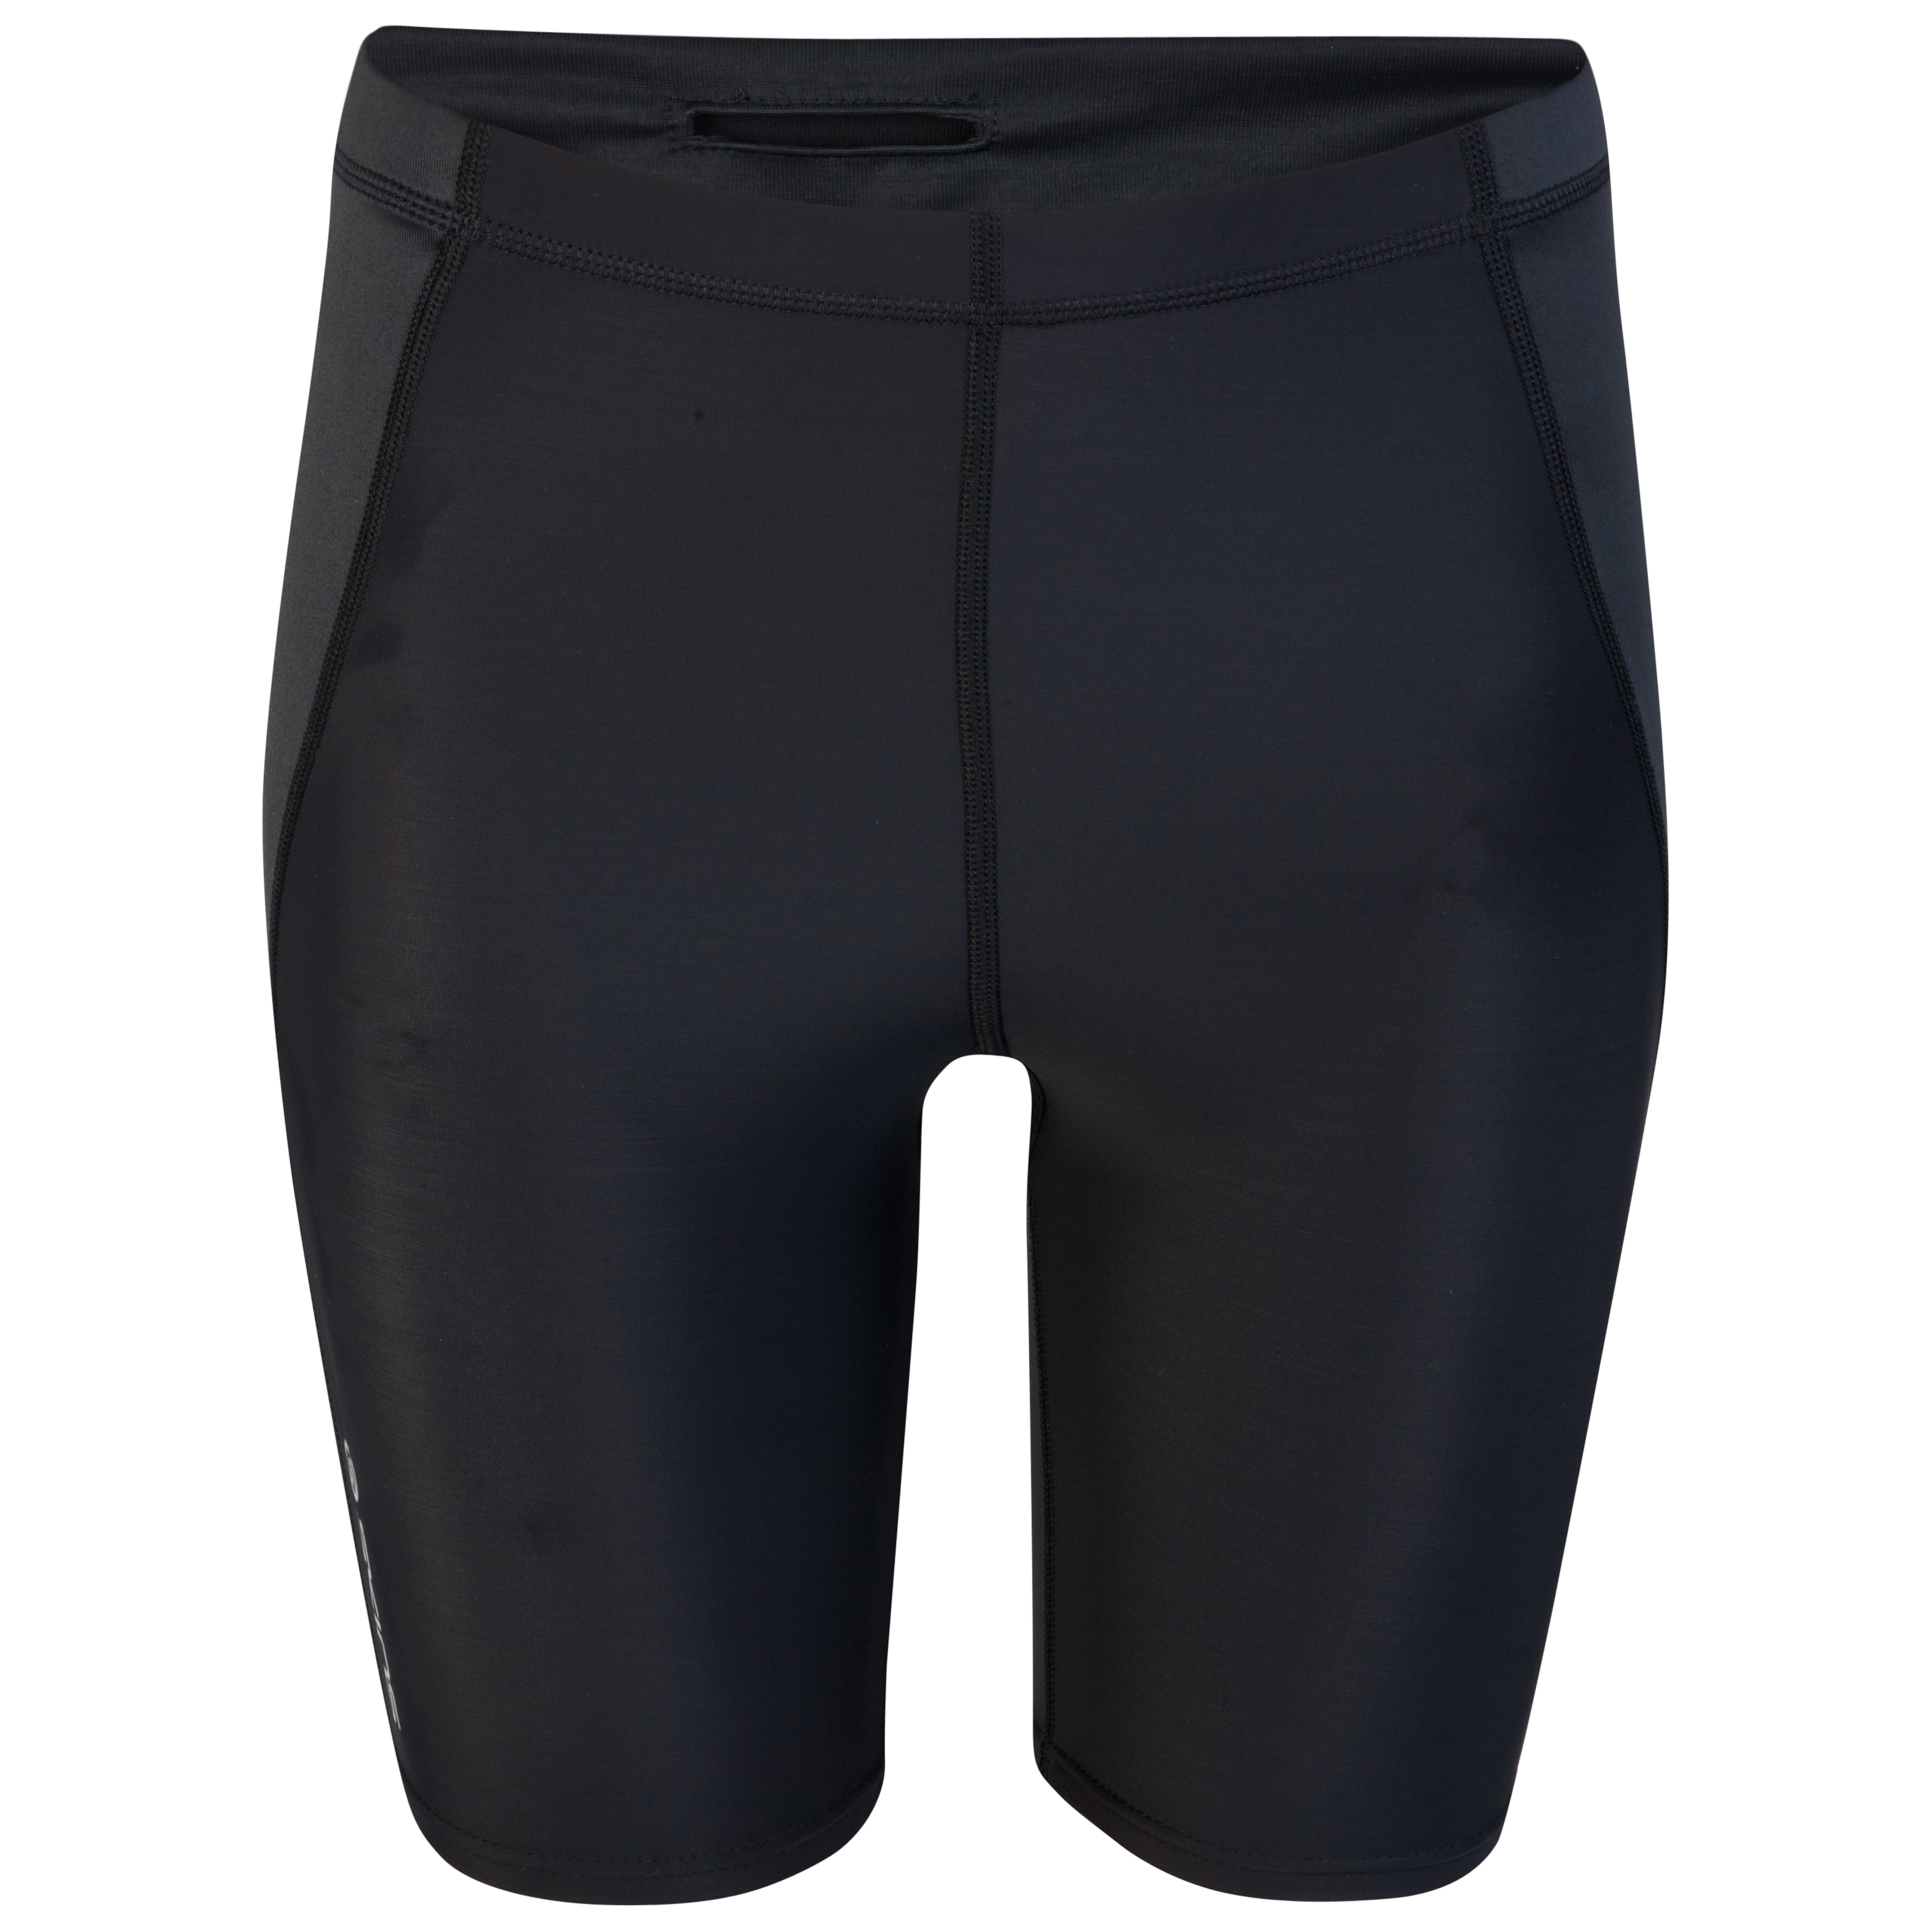 Skins A400 Active Shorts - Black/Silver - Womens